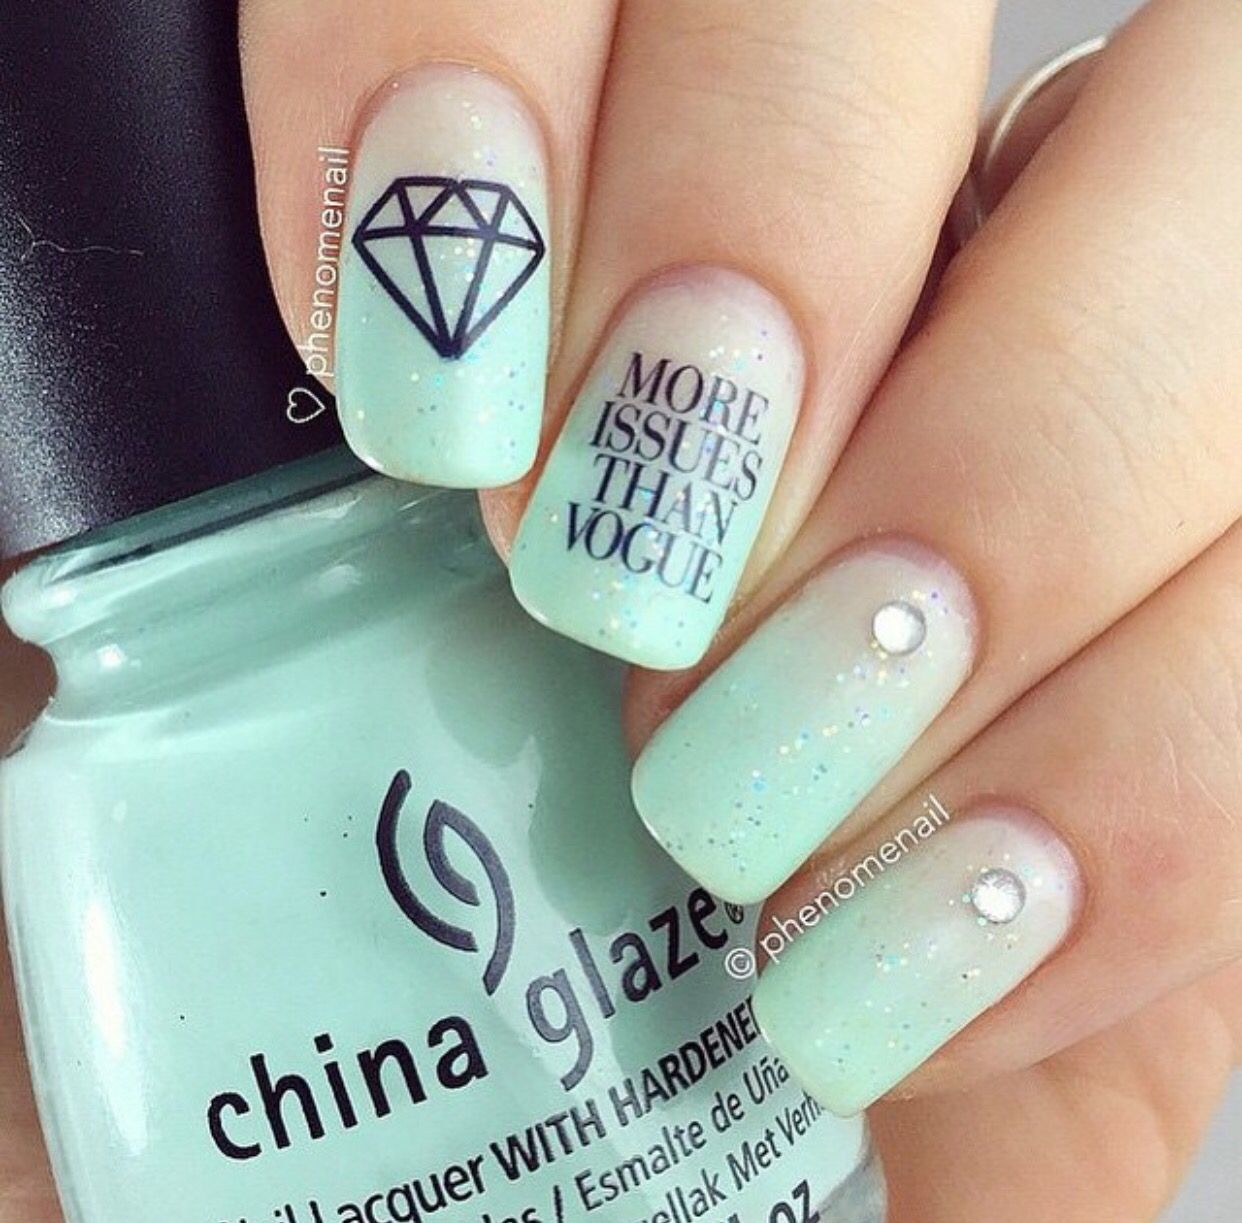 More issues than Vogue | Nails | Pinterest | Diseños de uñas y Pintar